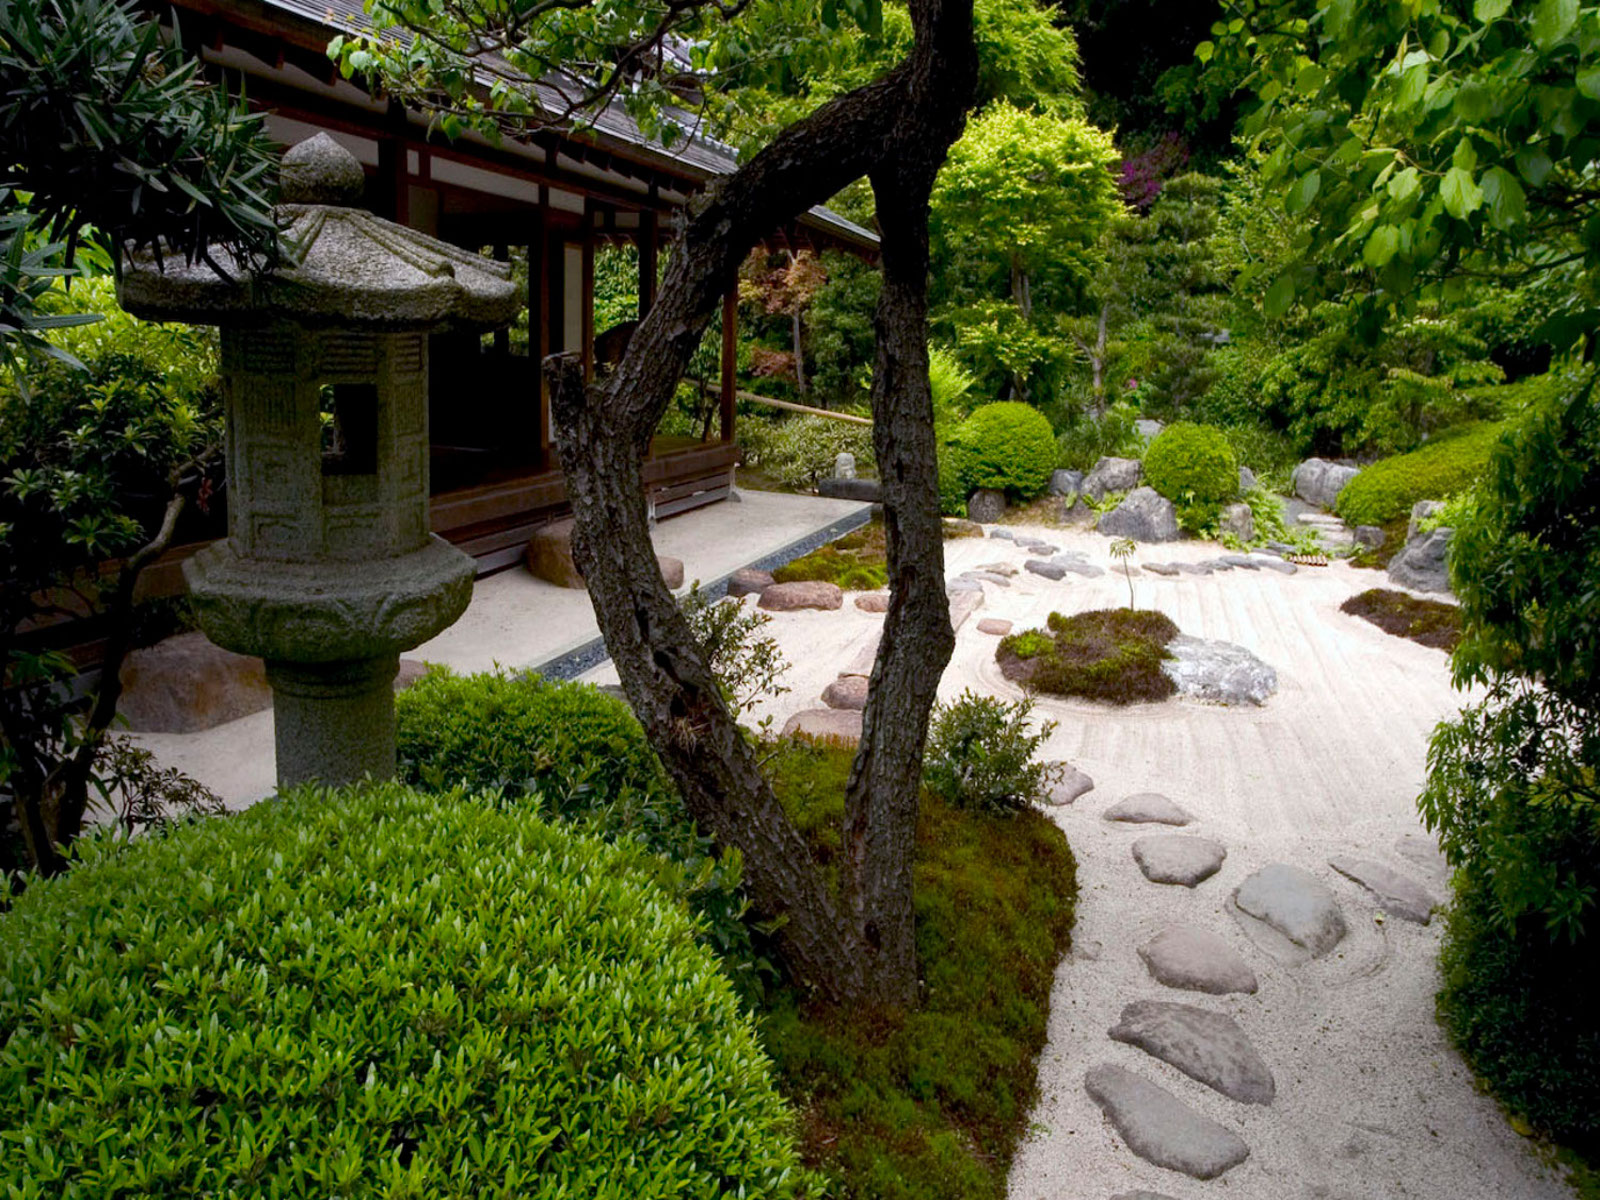 Zen garden wallpaper hd wallpaper pictures gallery for Japanese garden design ideas